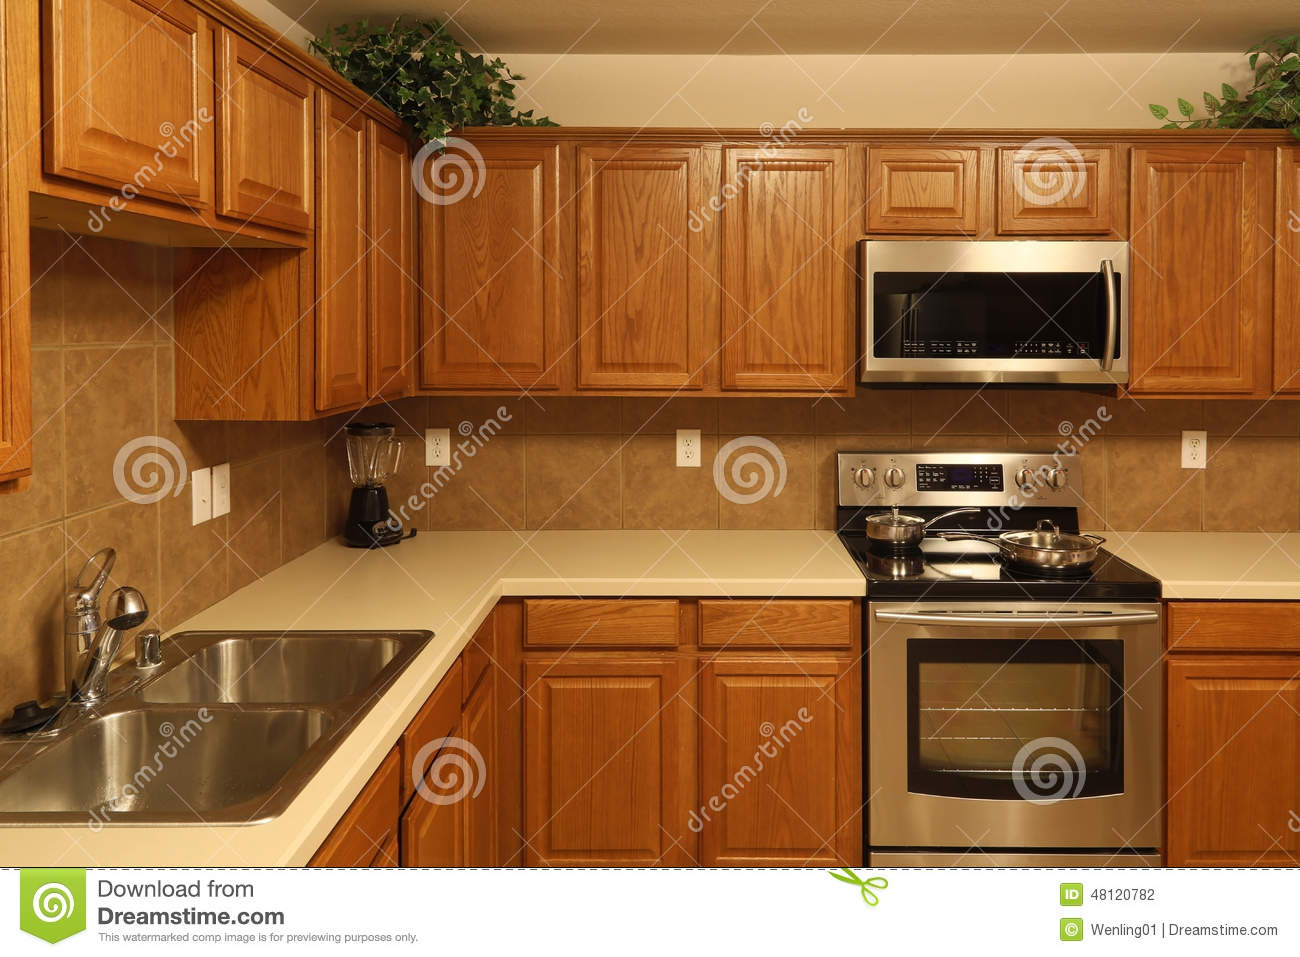 Modern Kitchen Background nice modern kitchen background stock photo - image: 48120782